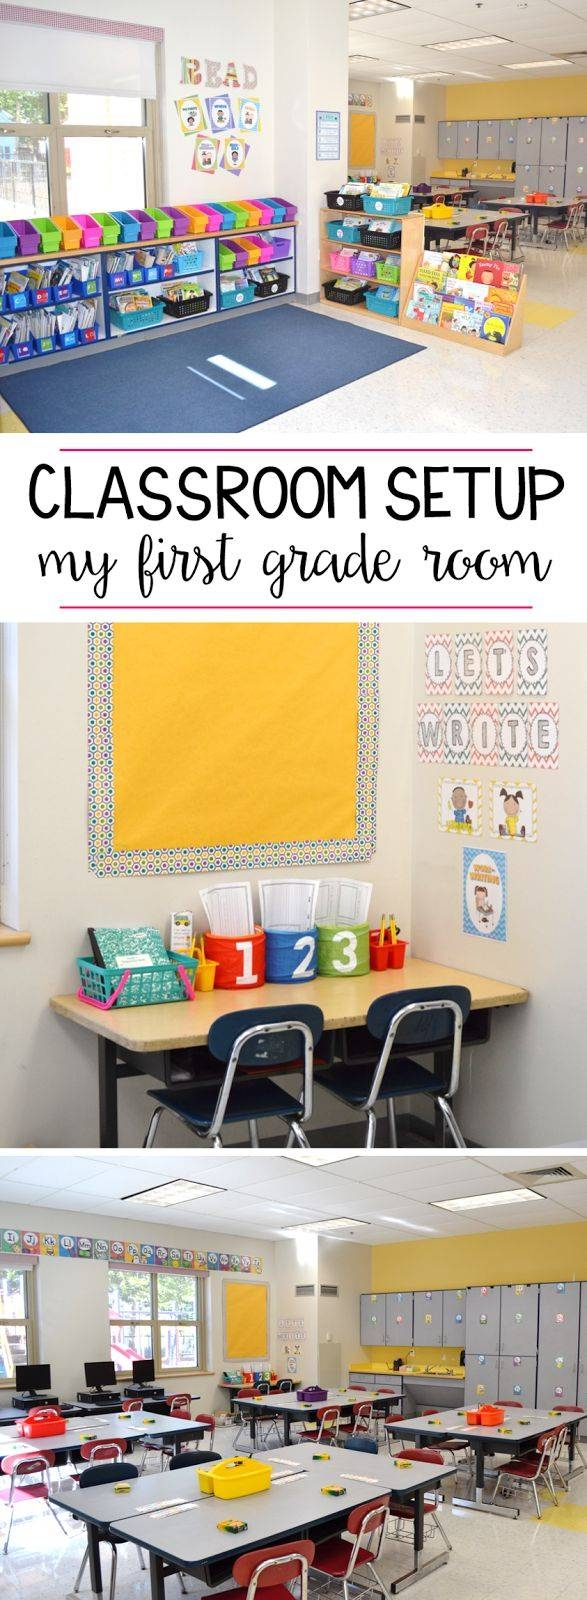 Classroom Wall Design Ideas ~ Popular preschool classroom wall decals